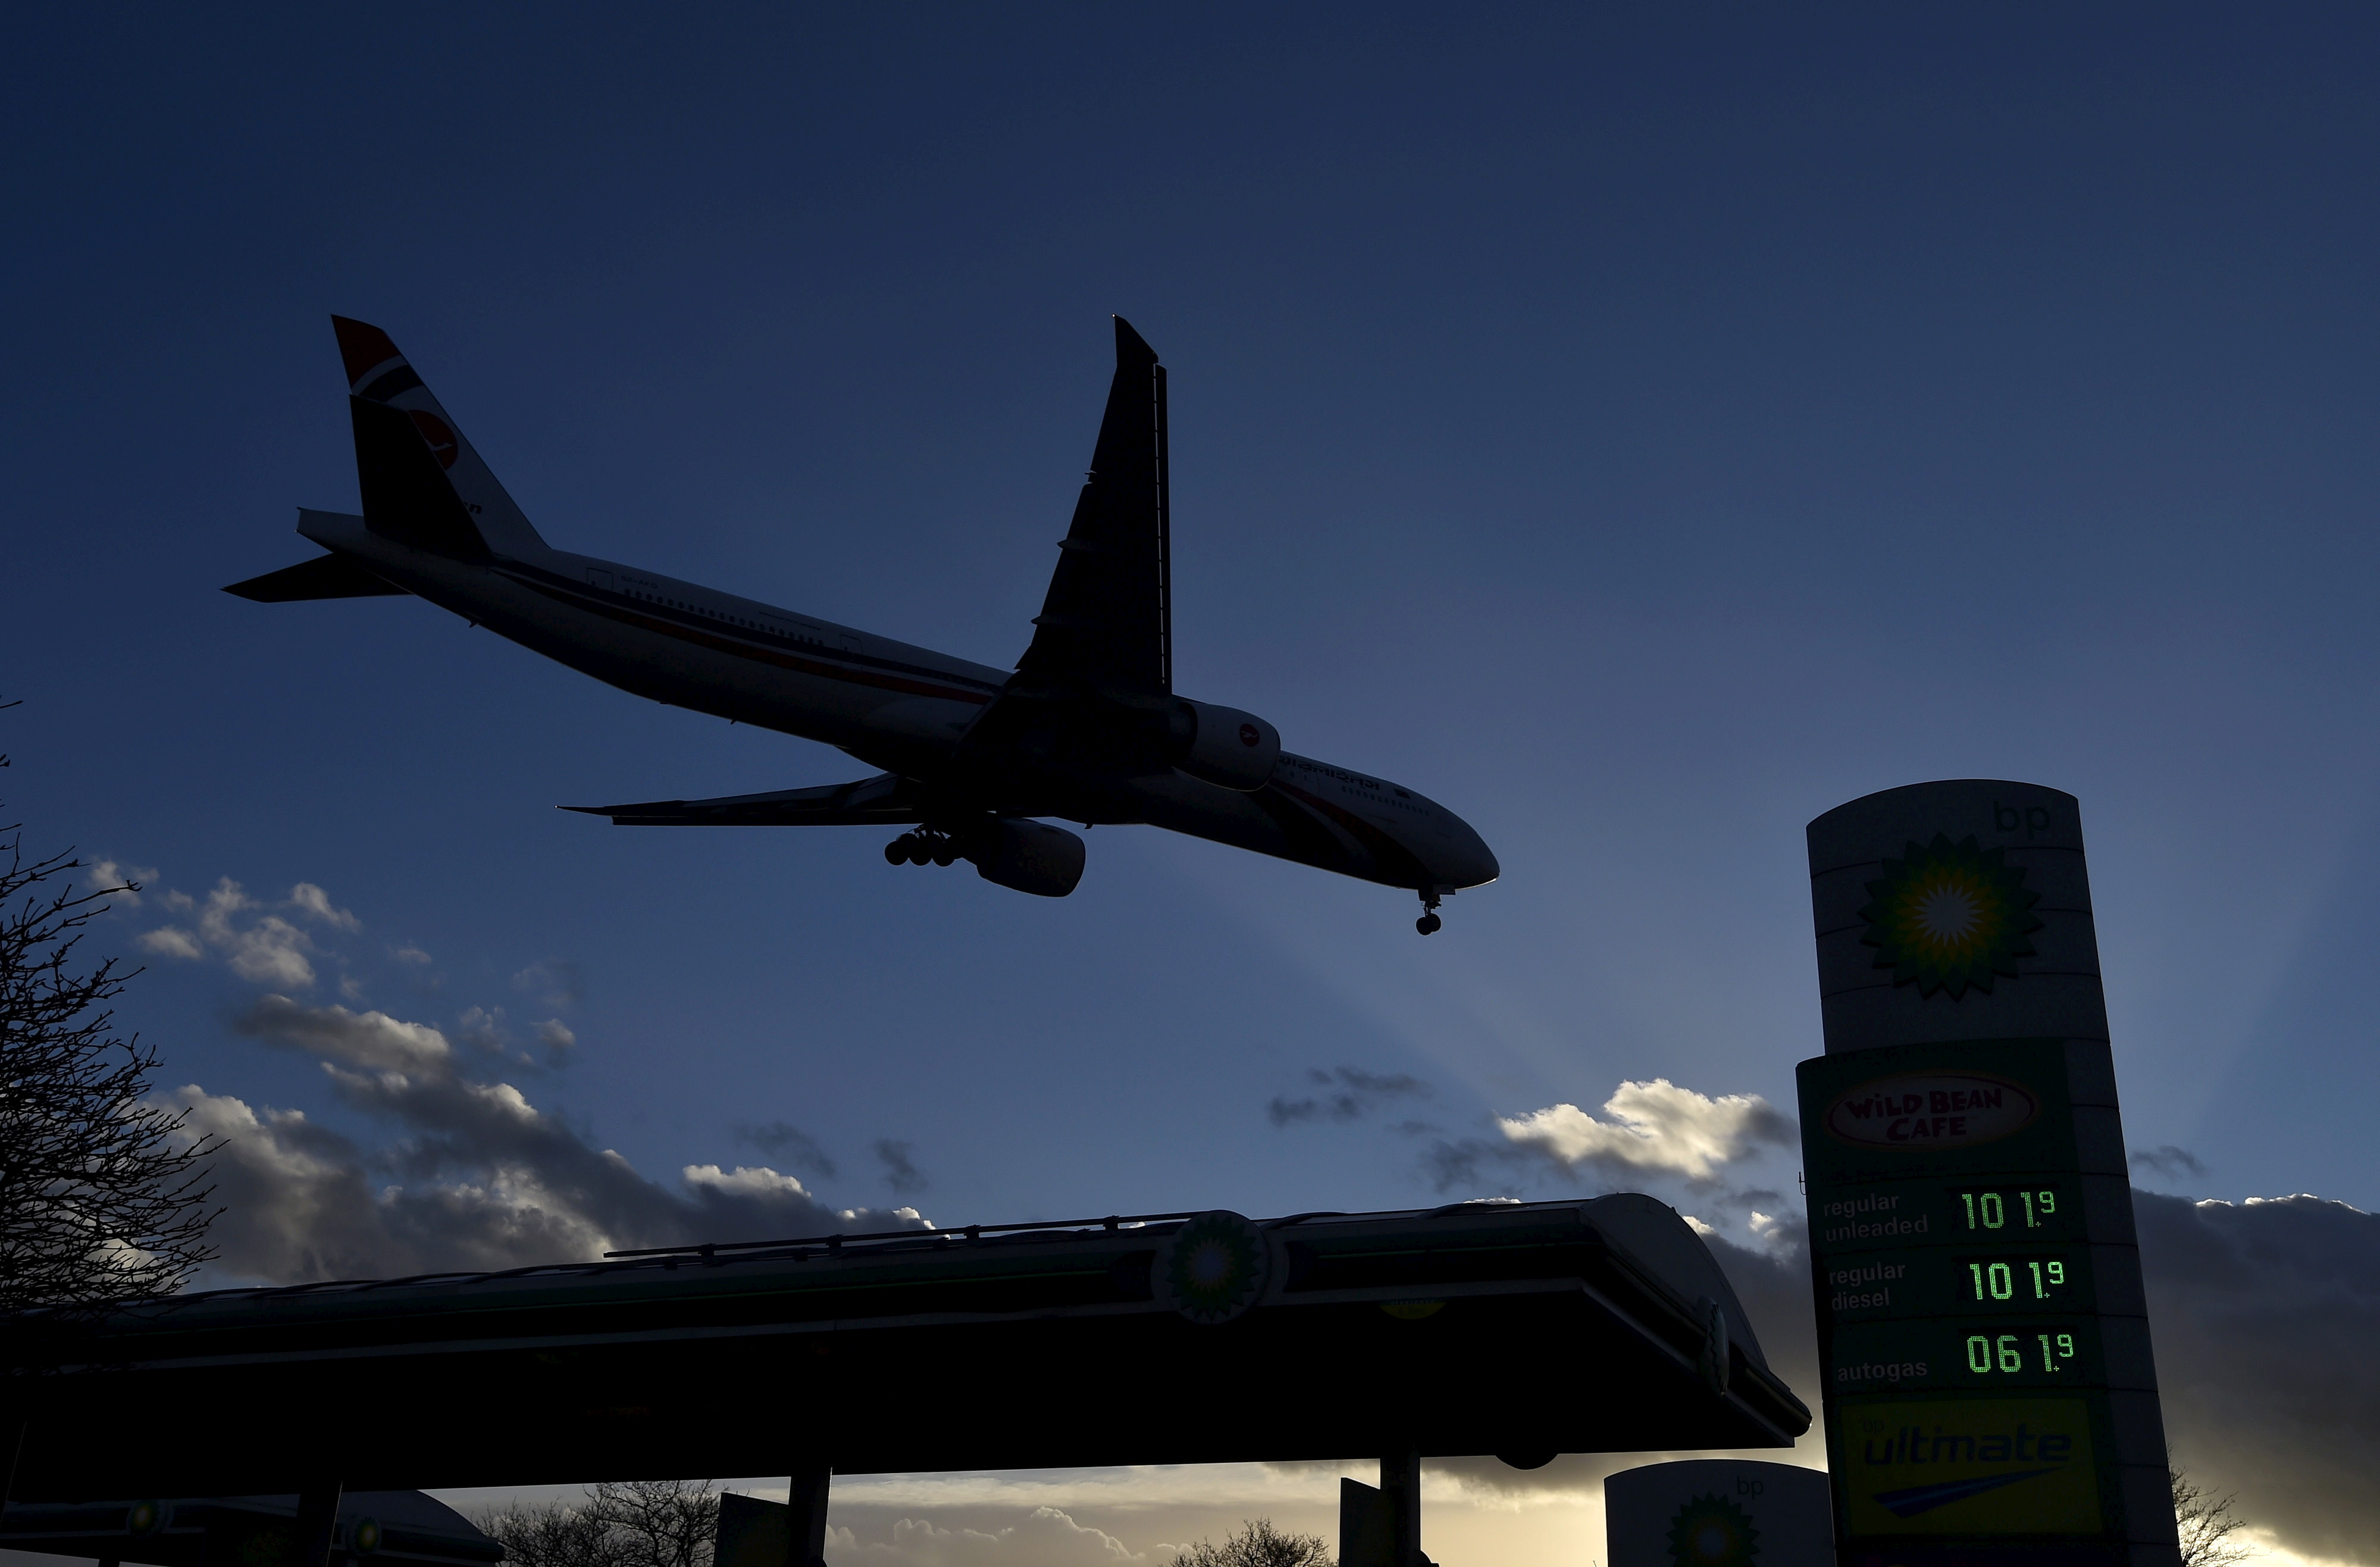 BP gas station signage is seen as a passenger plane makes its final landing approach to Heathrow Airport in west London, Britain January 30, 2016. REUTERS/Toby Melville/File Photo